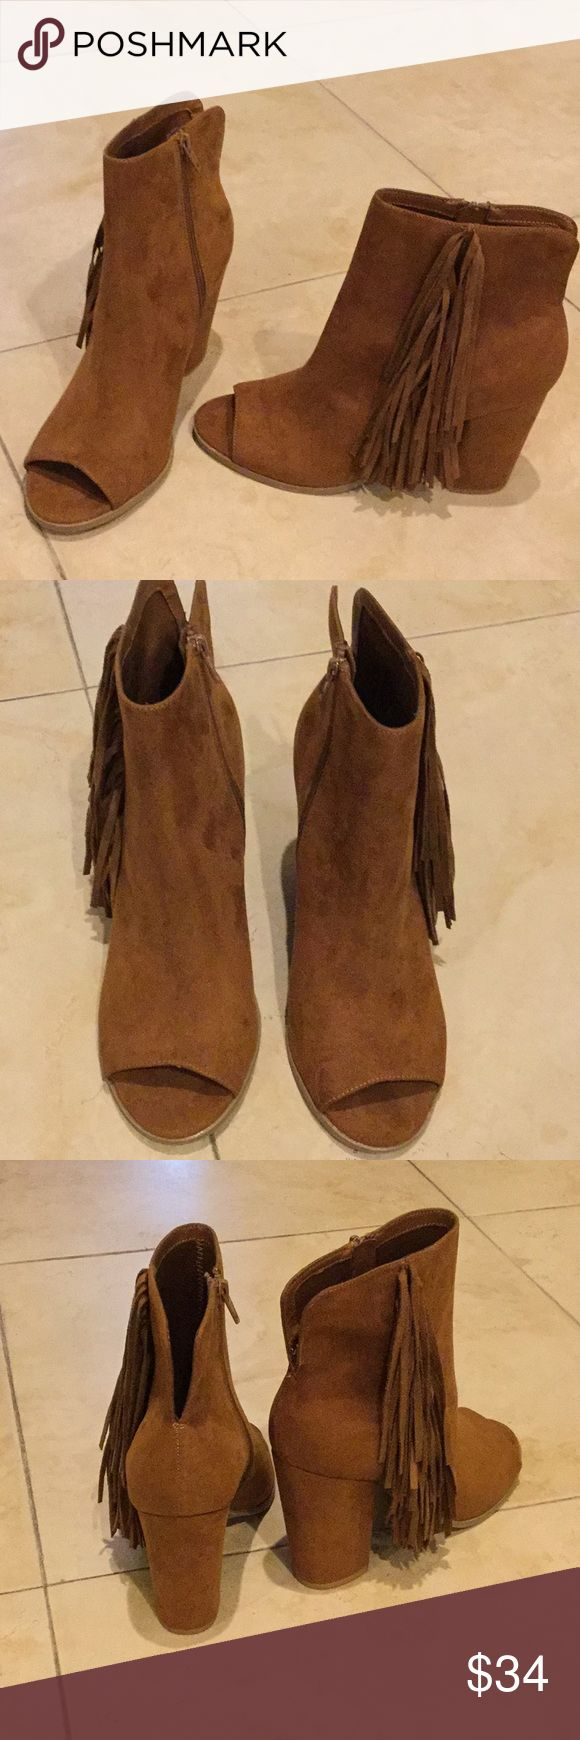 Peep toe booties Camel brown color peep toe booties Big Buddha Shoes Ankle Boots & Booties